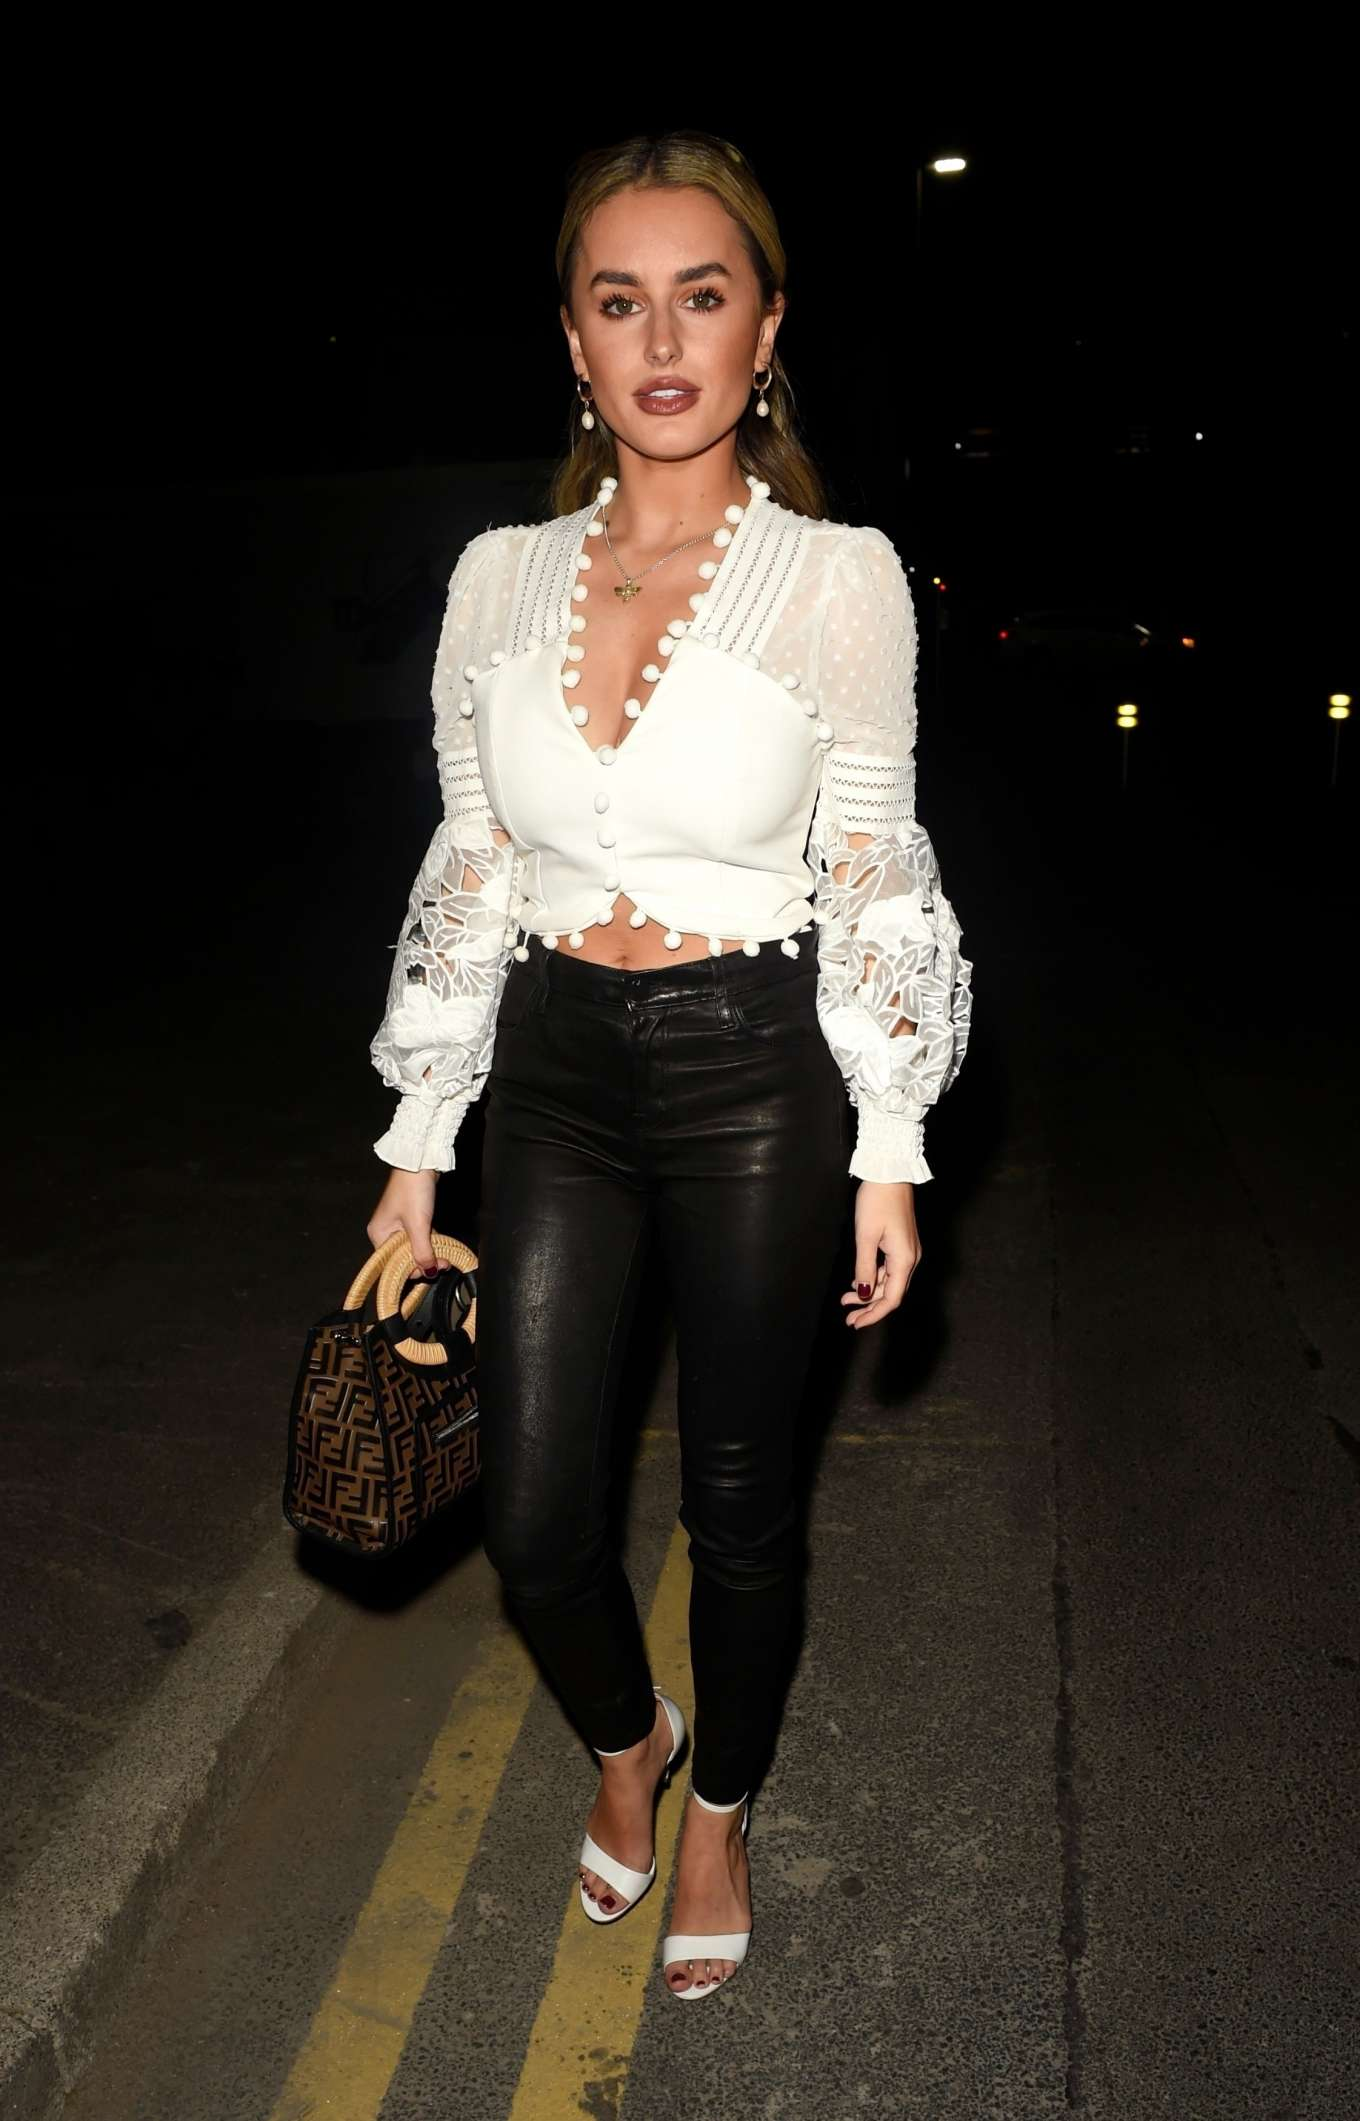 Amber Davies - Night out at Menagerie Restaurant and Bar in Manchester